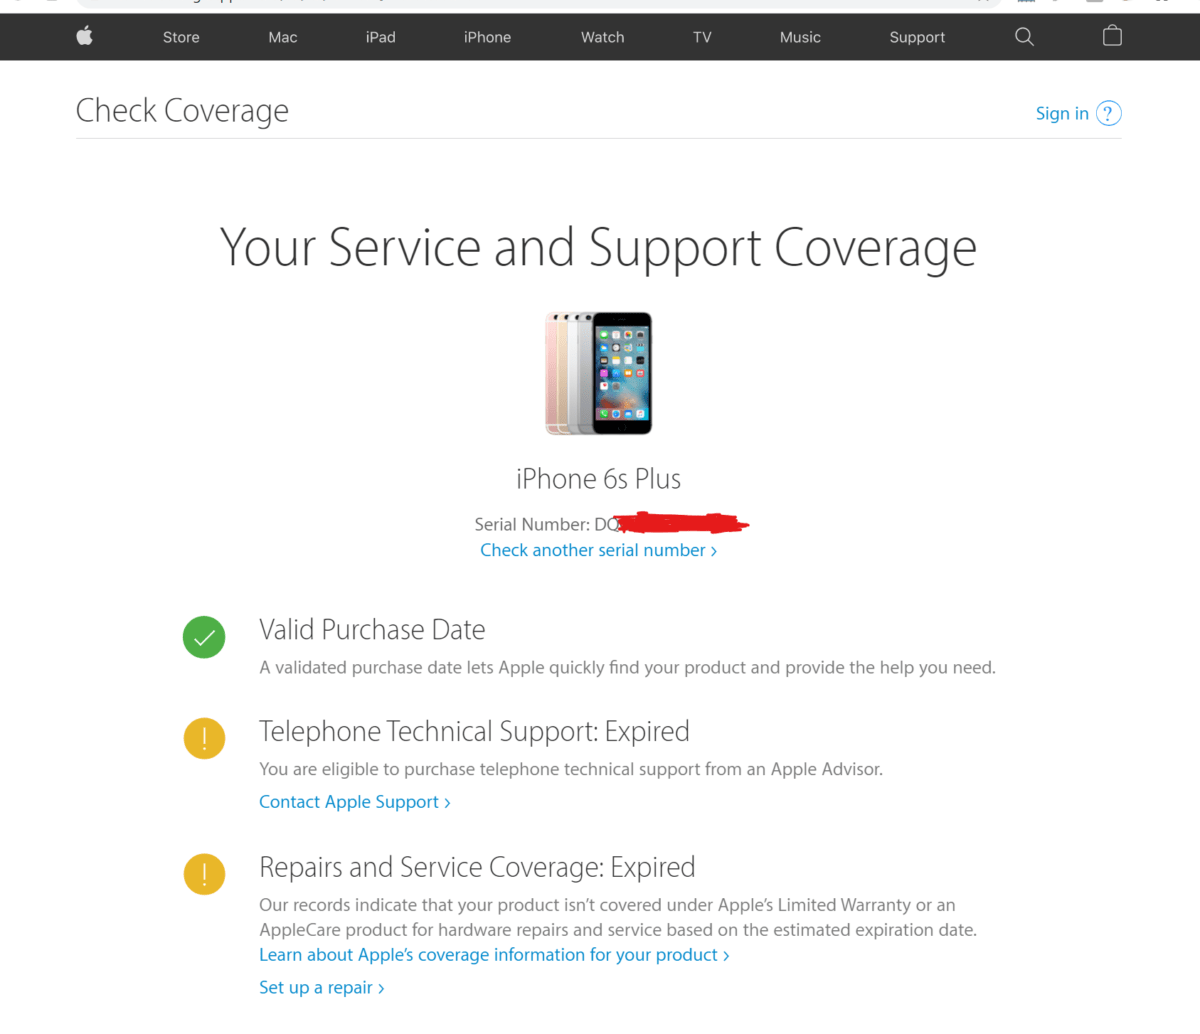 iPhone Coverage check using serial number